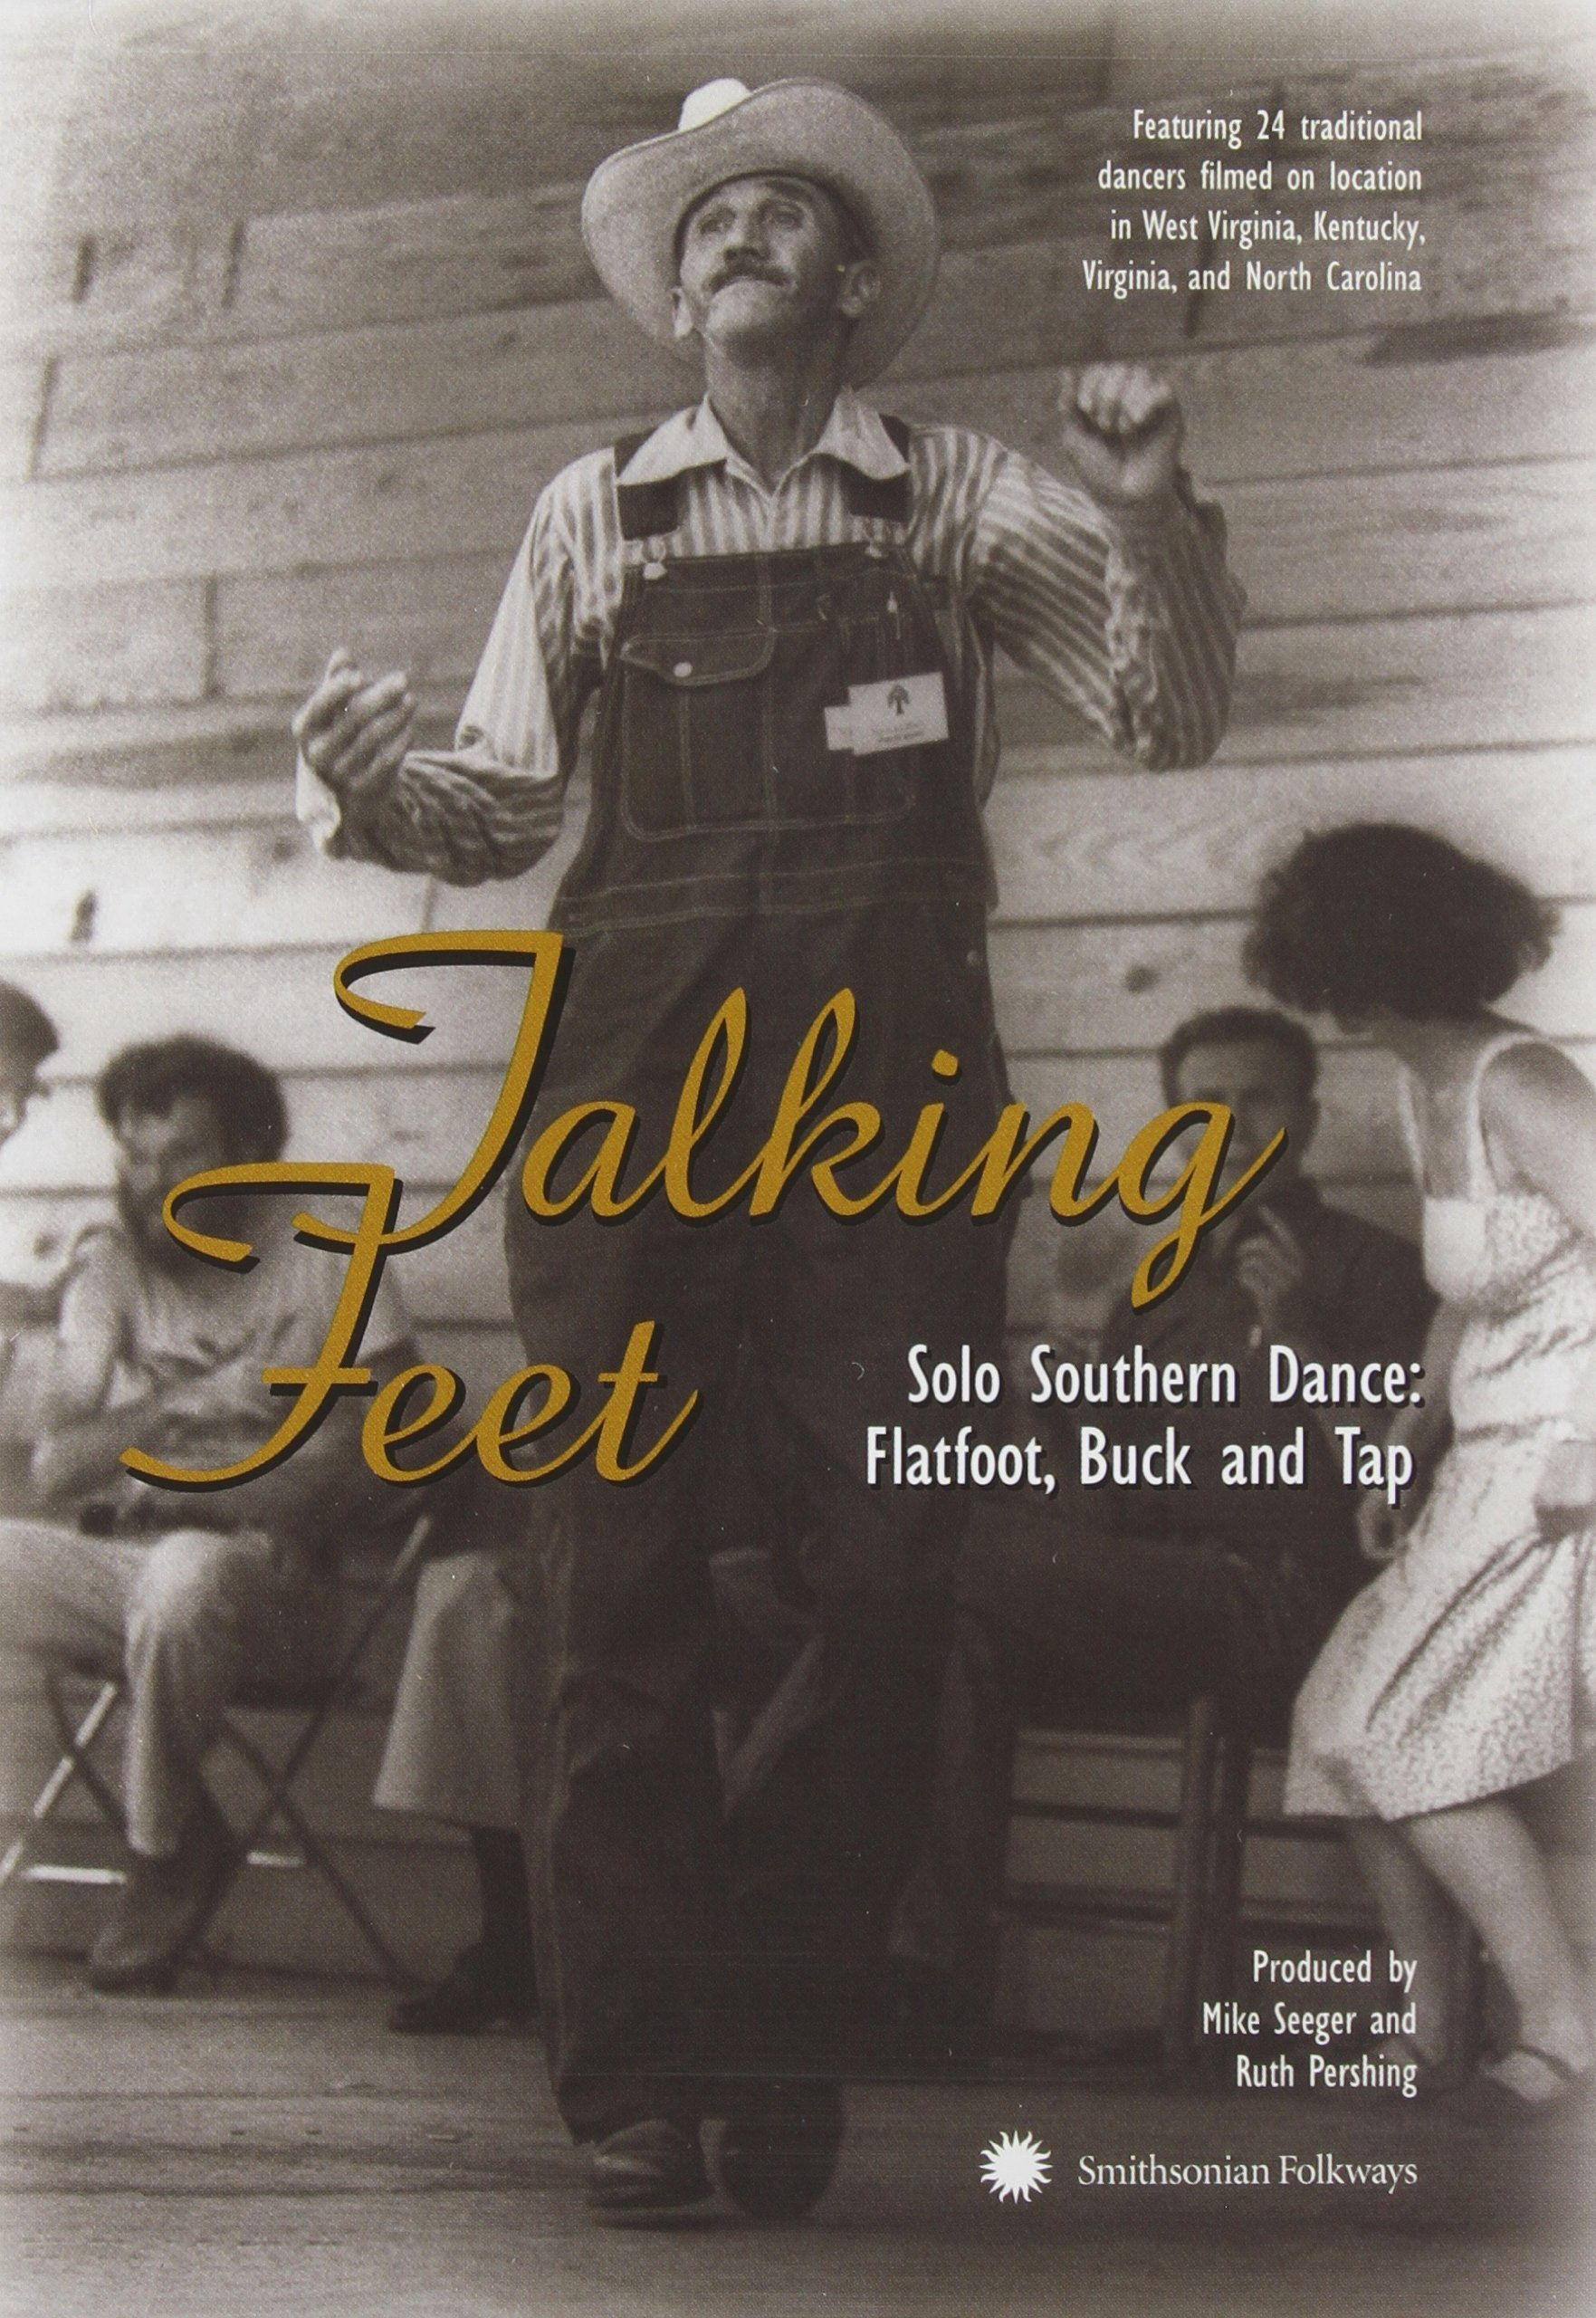 Talking Feet - Solo Southern Dance: Flatfoot, Buck and Tap by Ryko Distribution